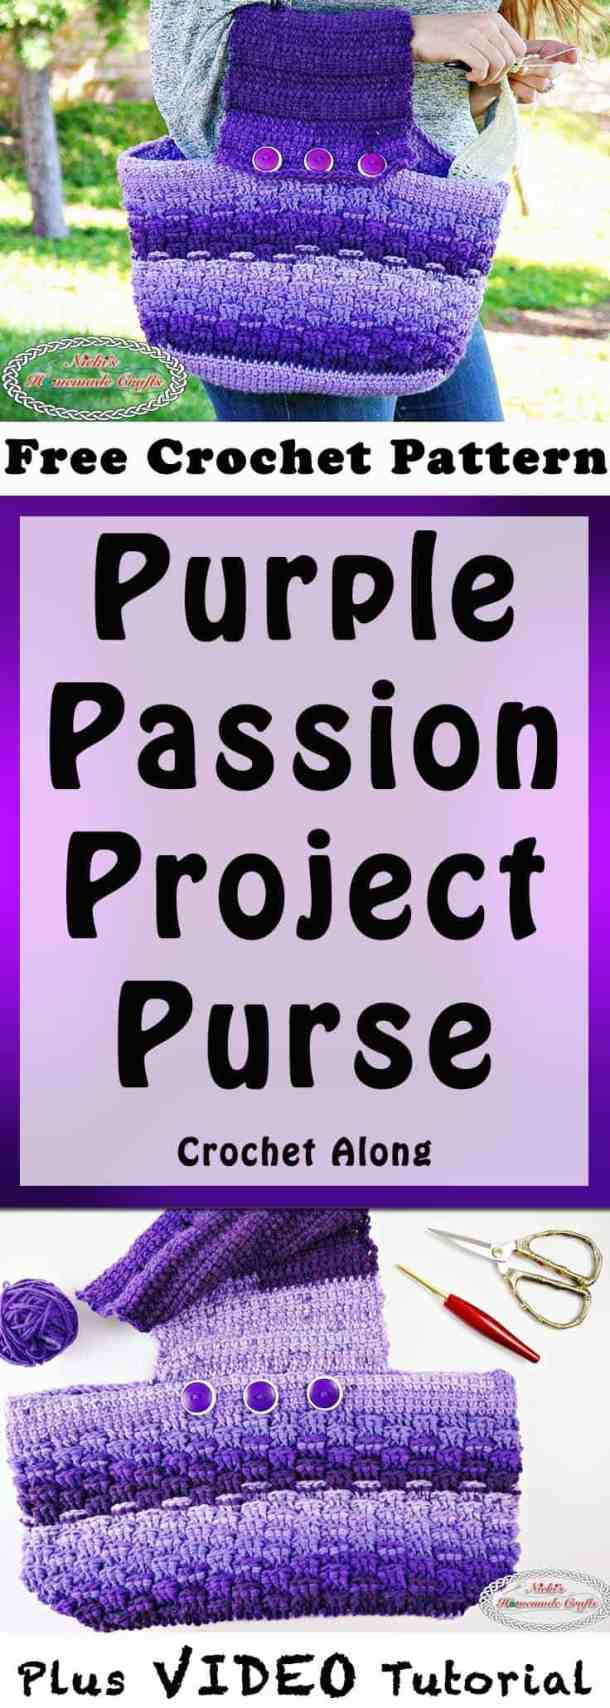 Purple Passion Project Purse is a Free Crochet Pattern and part of a Crochet Along by Nicki's Homemade Crafts